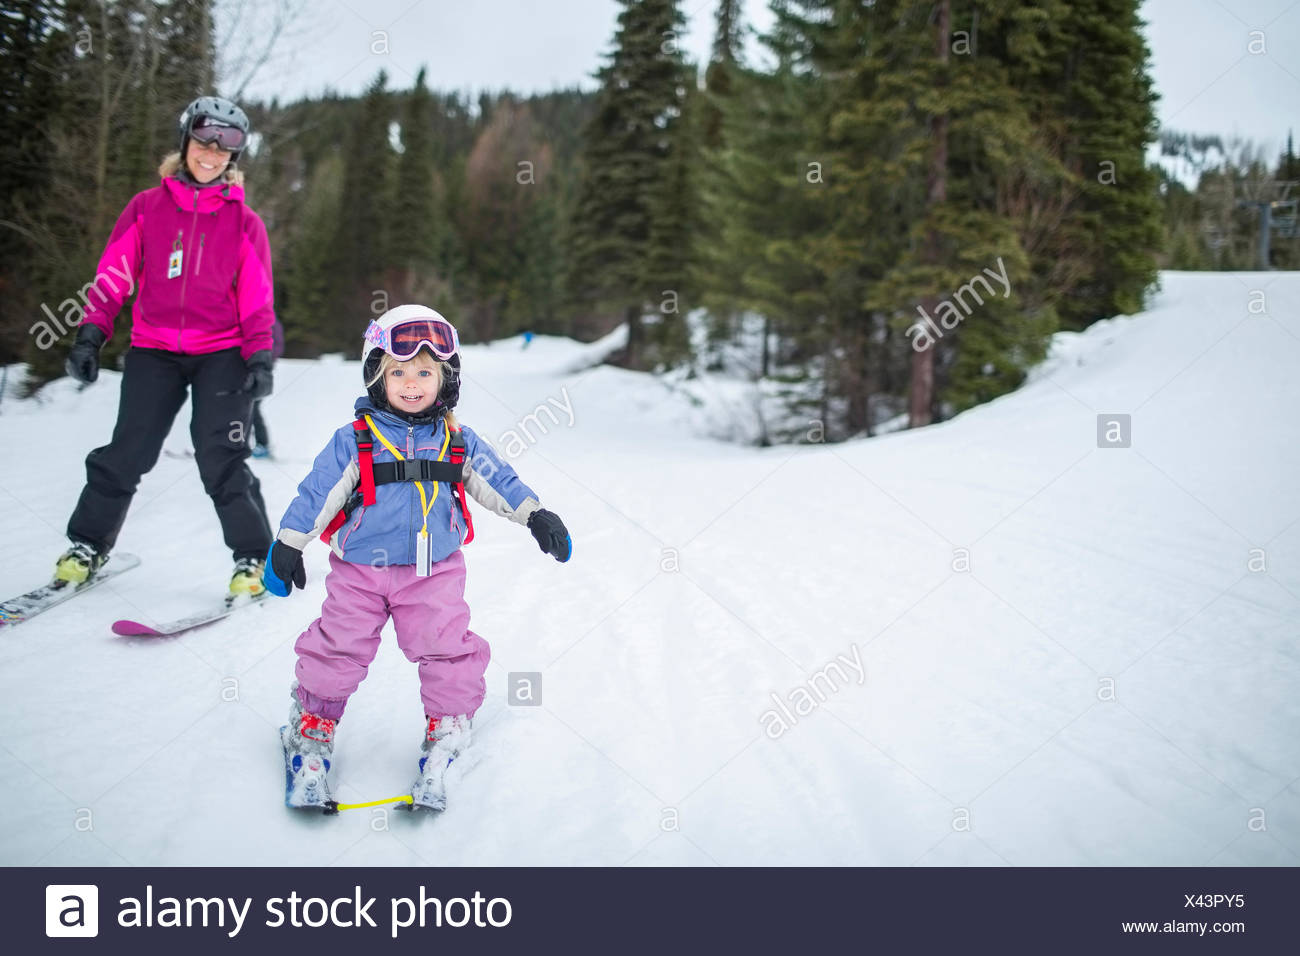 Little girl (2-3) learning skiing with mother - Stock Image